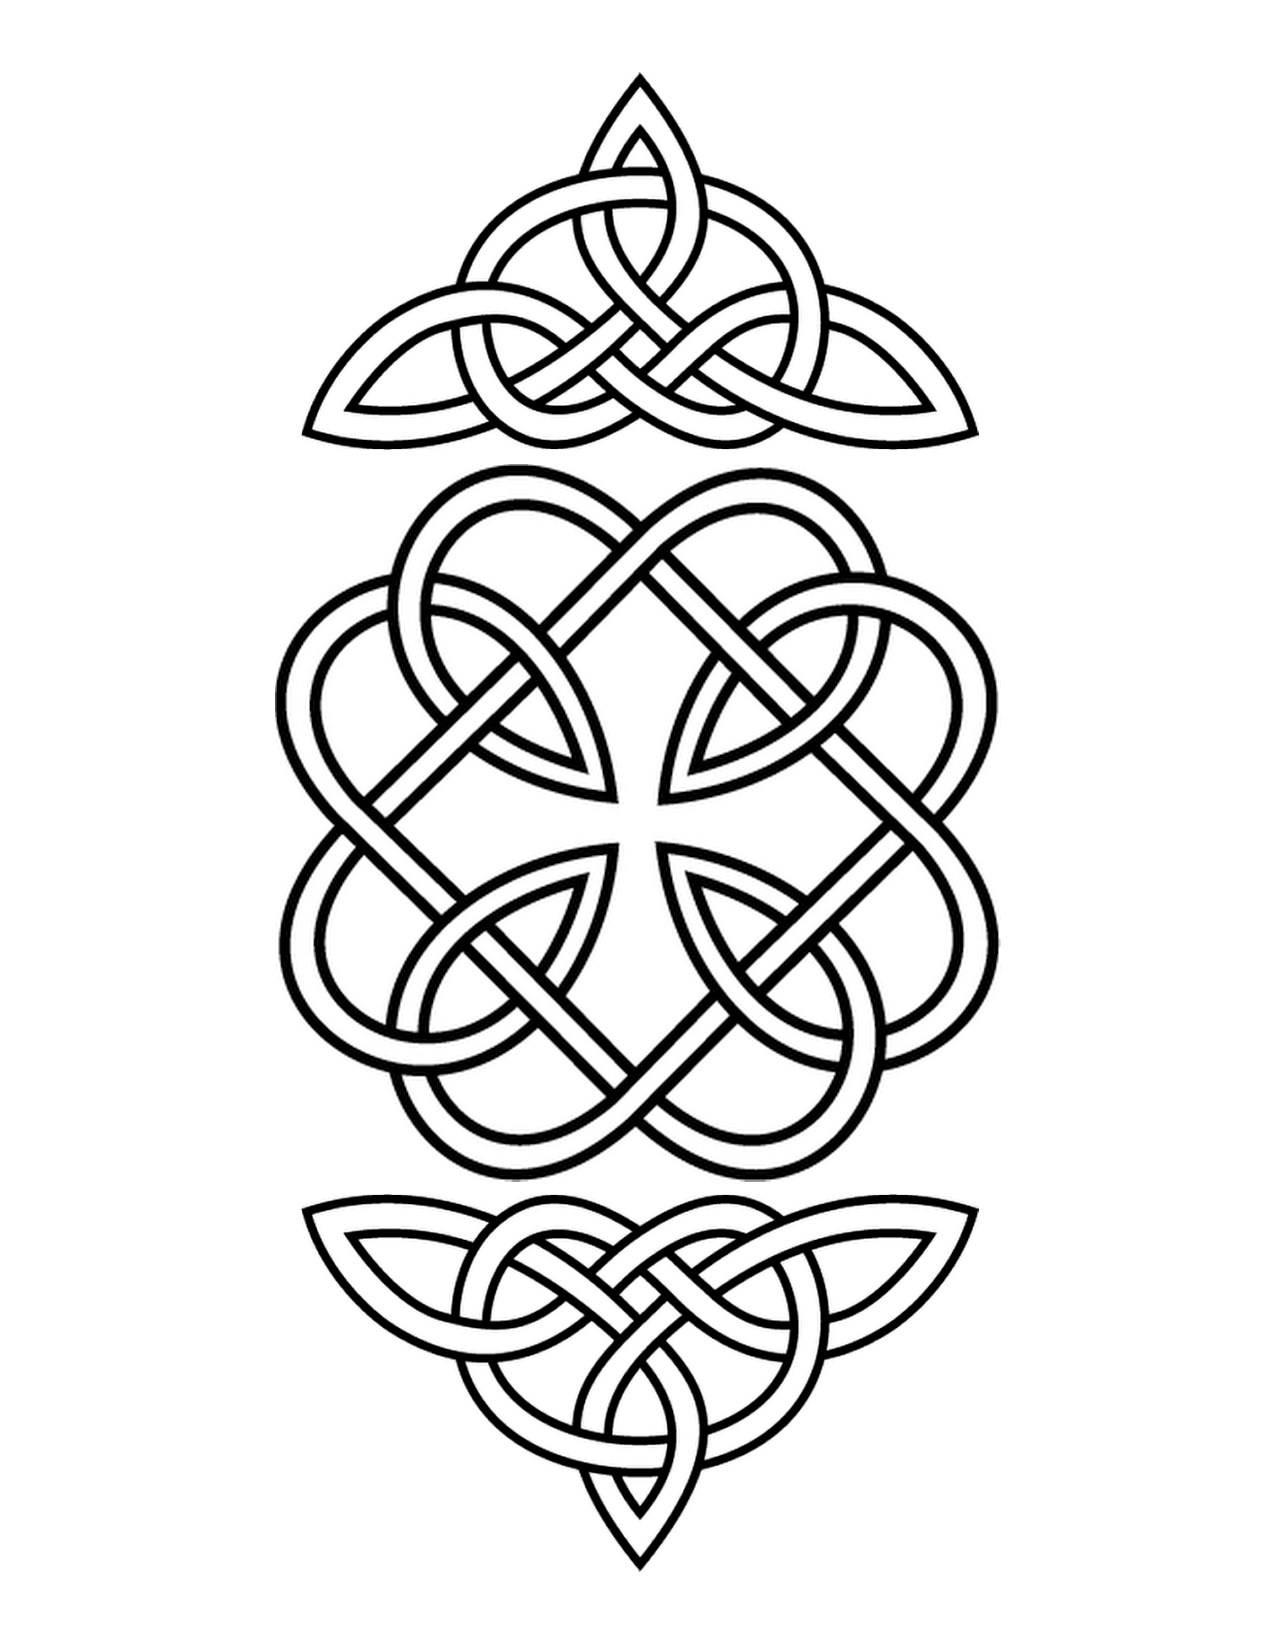 1275x1650 Celtic Knot To Print, Click The Image Then Choose Print